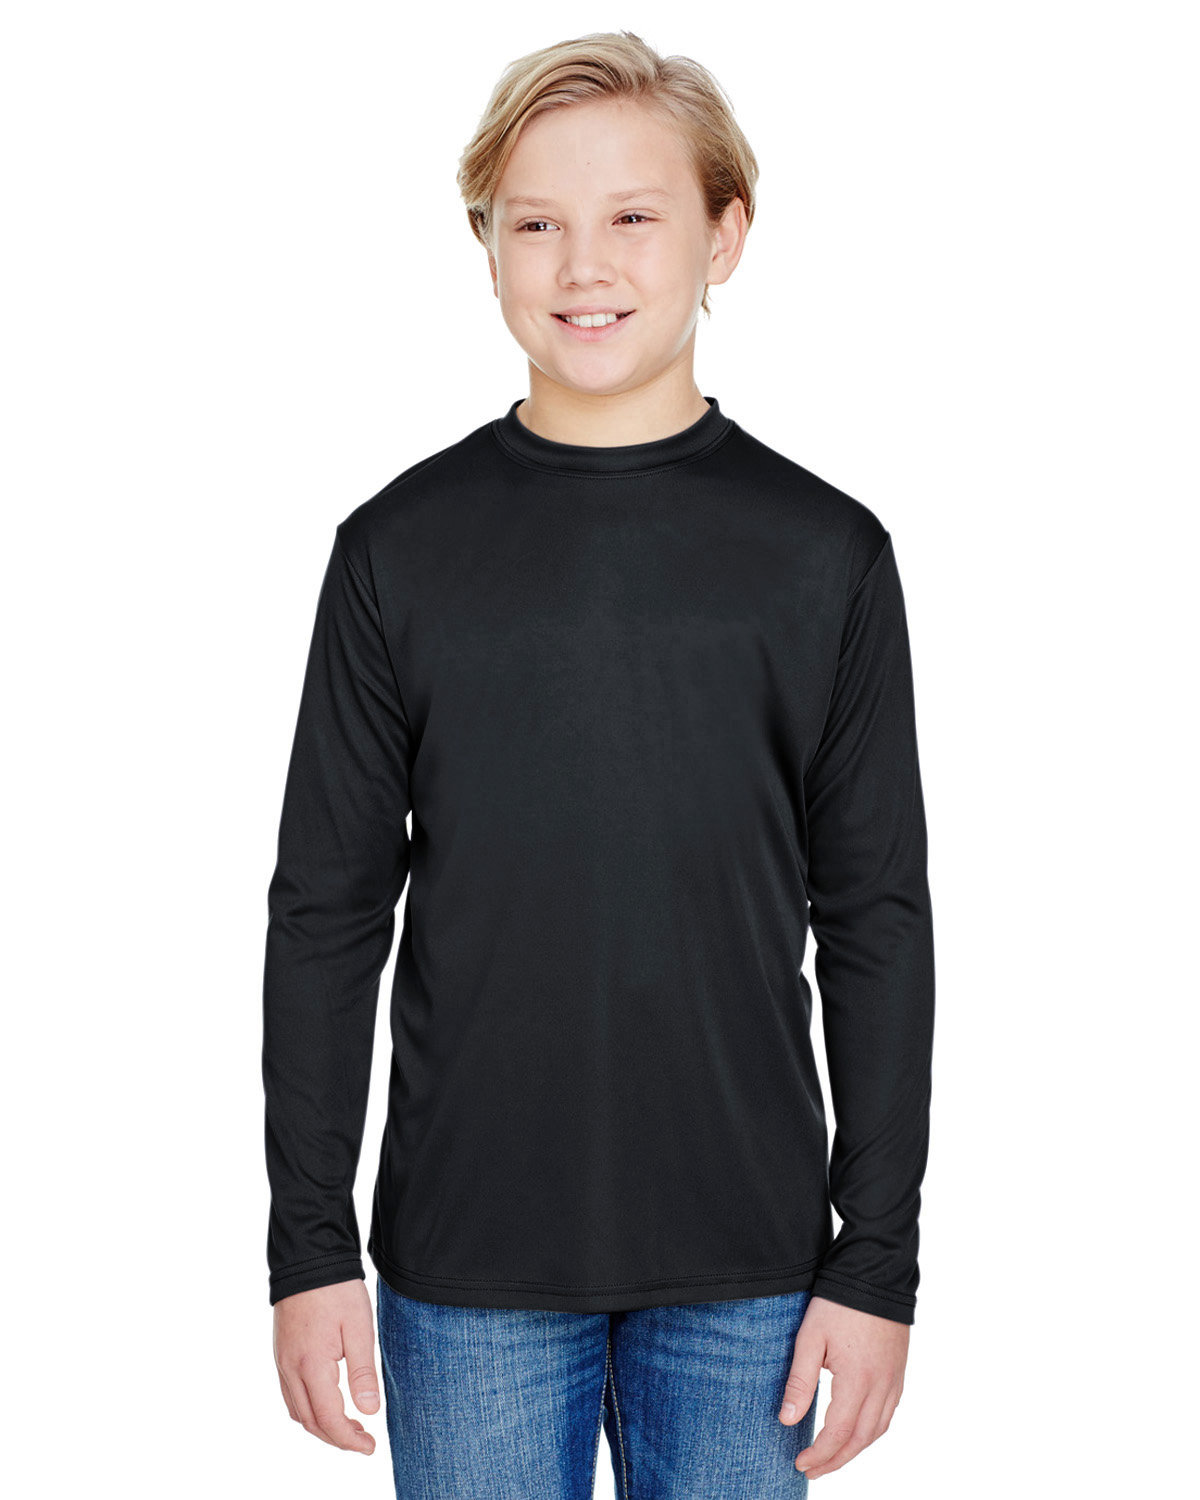 A4 Youth Long Sleeve Cooling Performance Crew Shirt BLACK